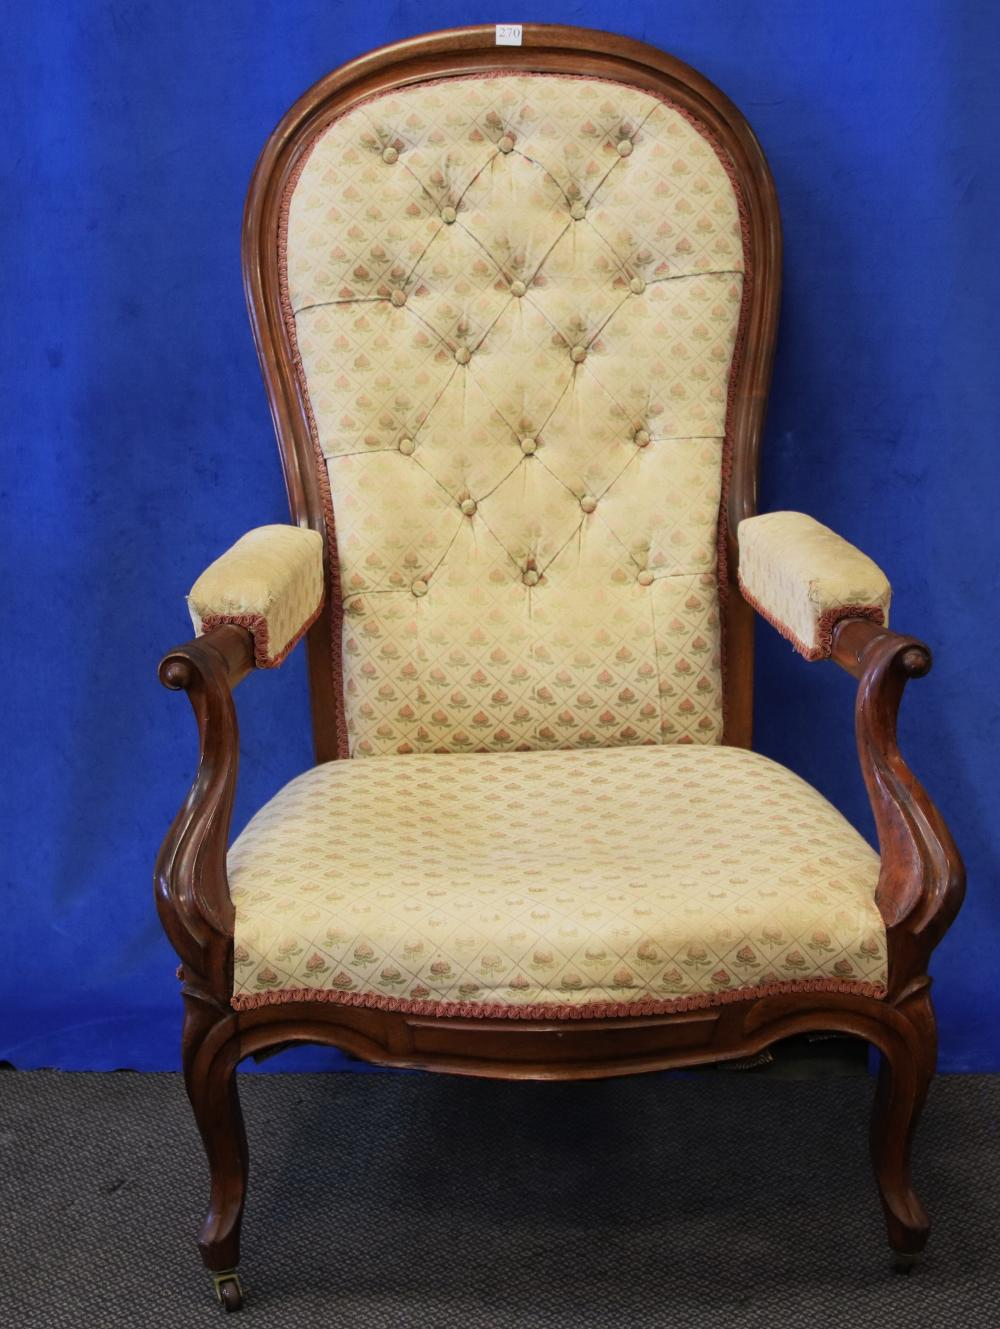 19TH CENTURY EUROPEAN MAHOGANY RECLINING HIGH BACK ARM CHAIR, MAHOGANY FRAME WITH CREAM FLORAL UPHOLSTERY, UNDER ARM METAL RECLINING MECHANISM